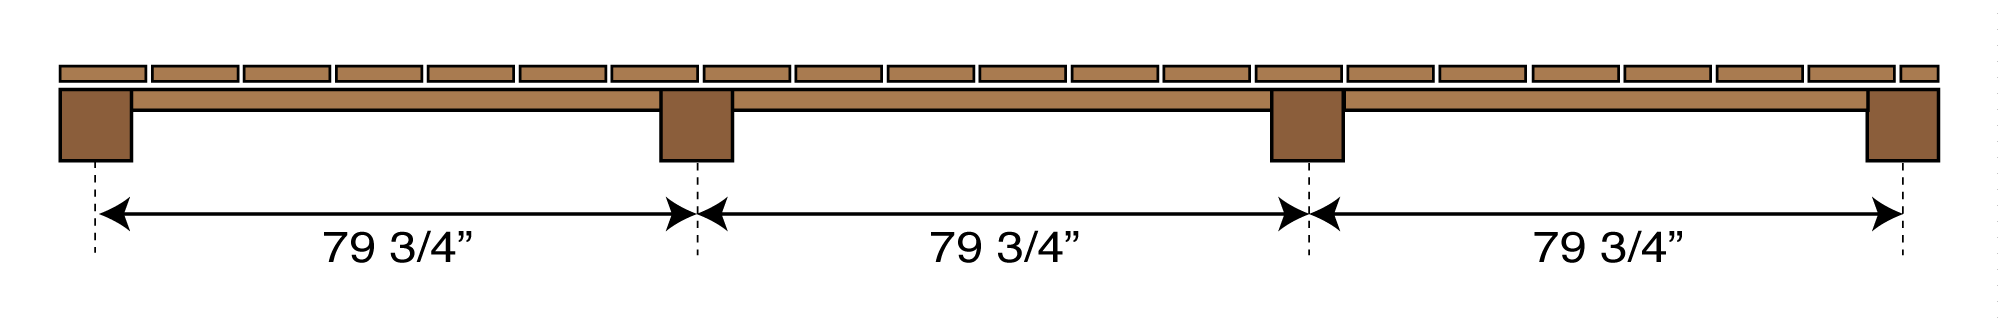 drawing showing the distance between fence posts